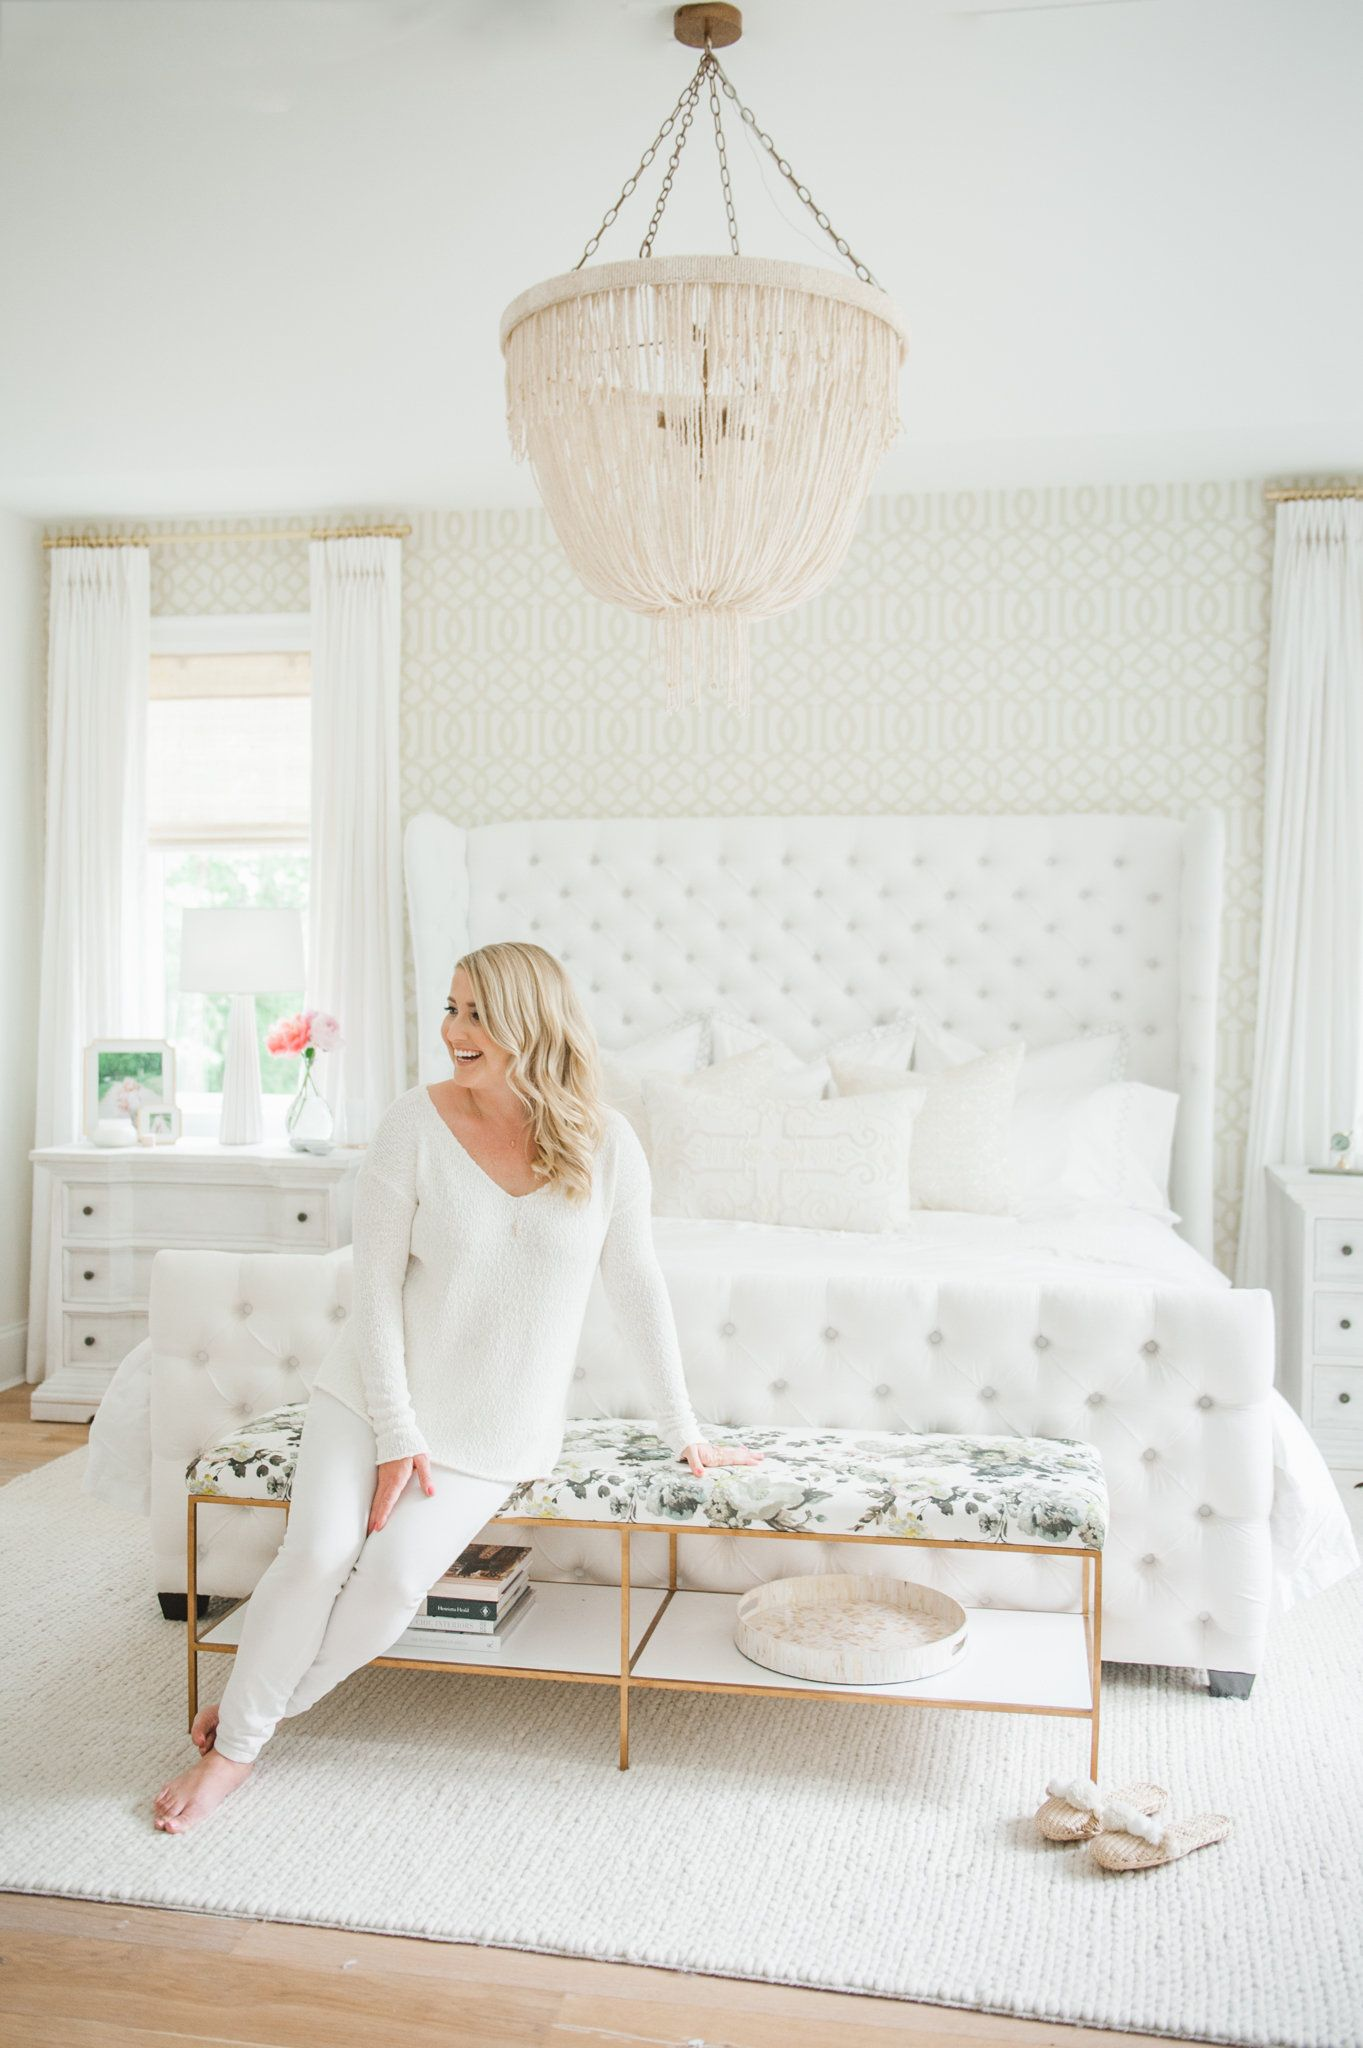 Master bedroom dimensions  Our Bedroom Reveal  Home Decor  Pinterest  Bedrooms Master